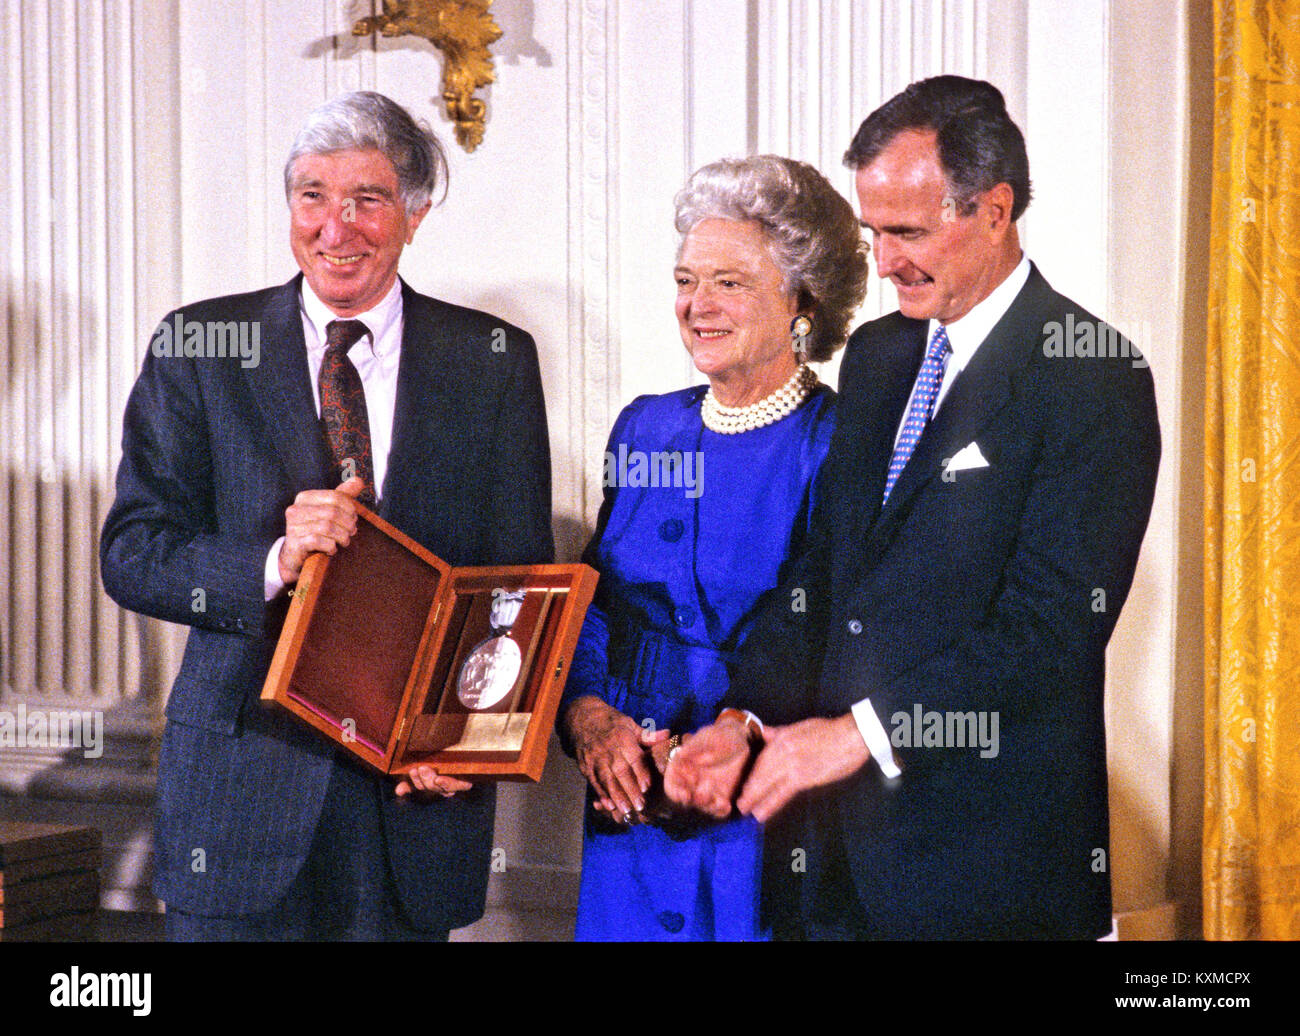 United States President George H.W. Bush and first lady Barbara Bush present the National Medal of Arts to American - Stock Image